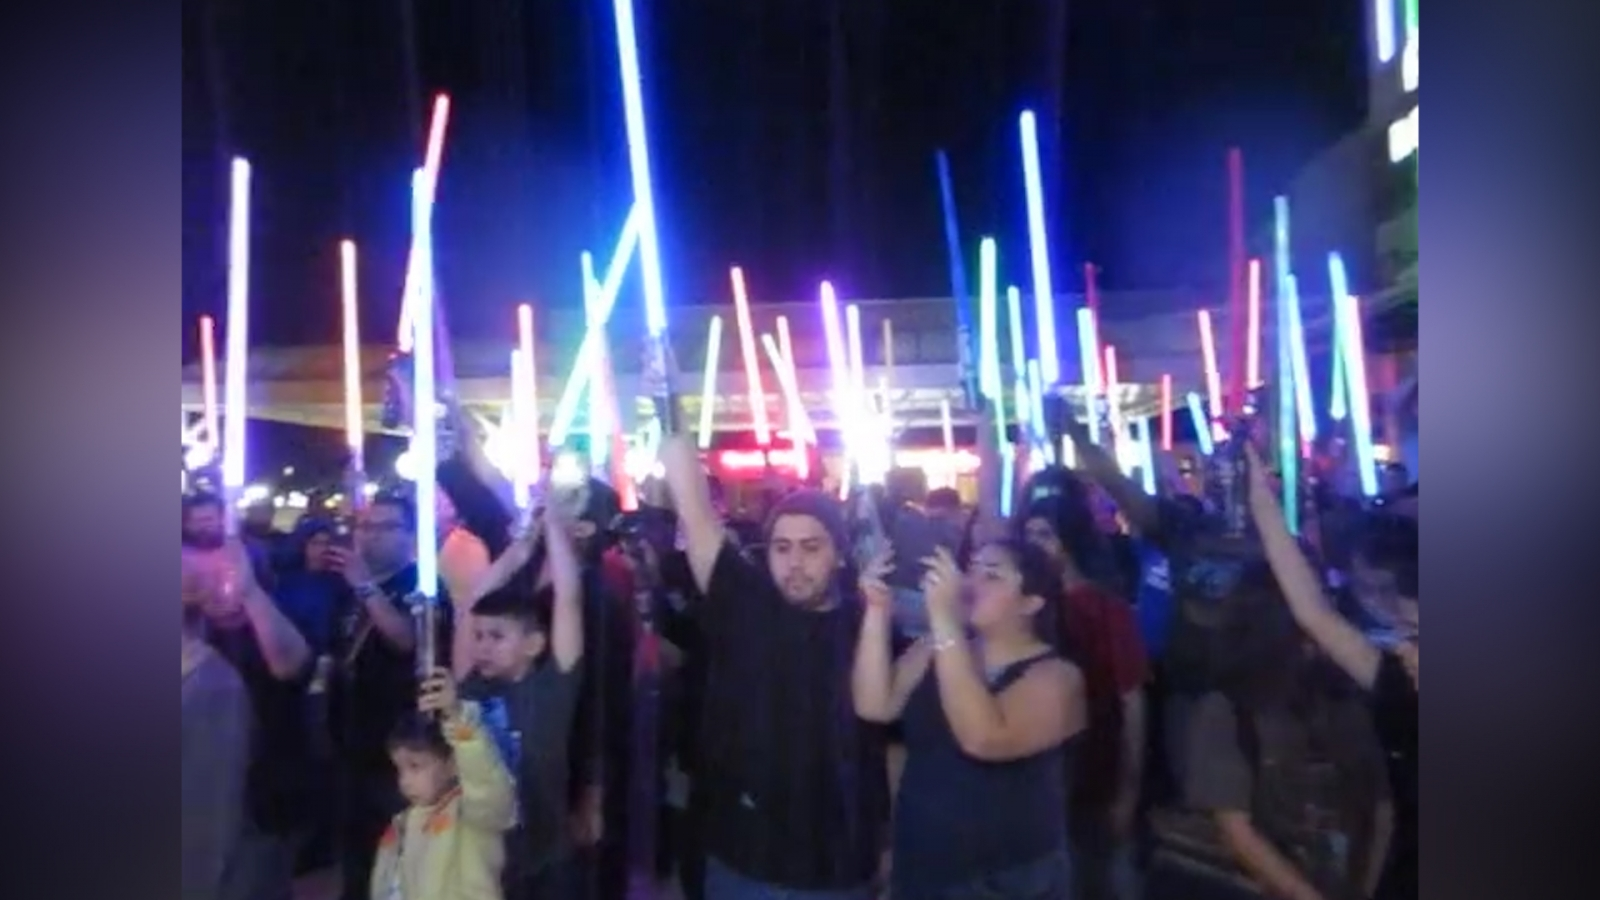 Lightsaber vigils held for Carrie Fisher across the US